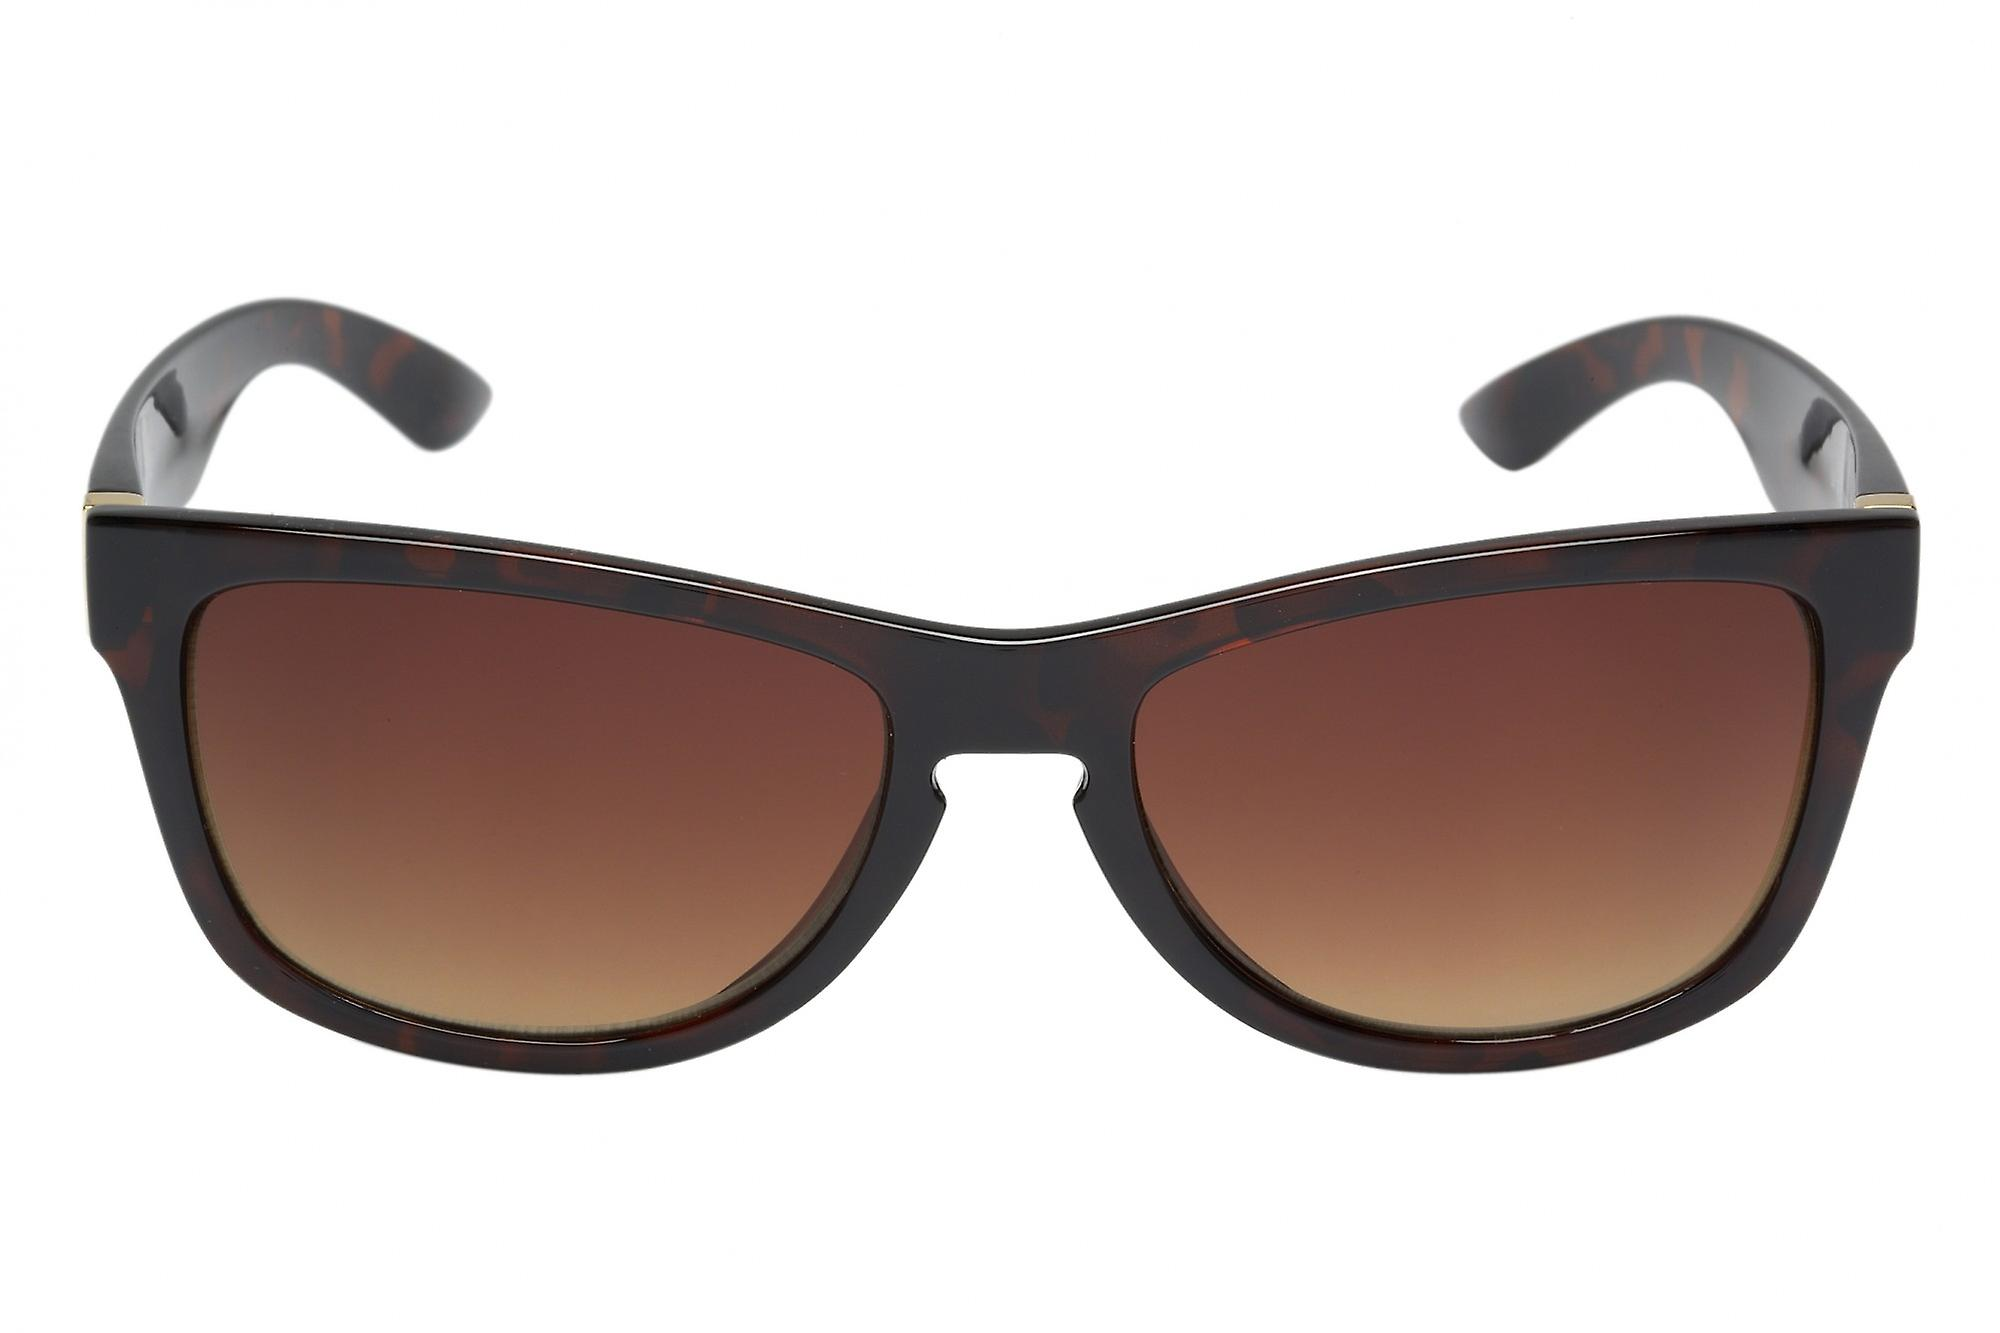 Burgmeister Gents sunglasses New Orleans, SBM102-242